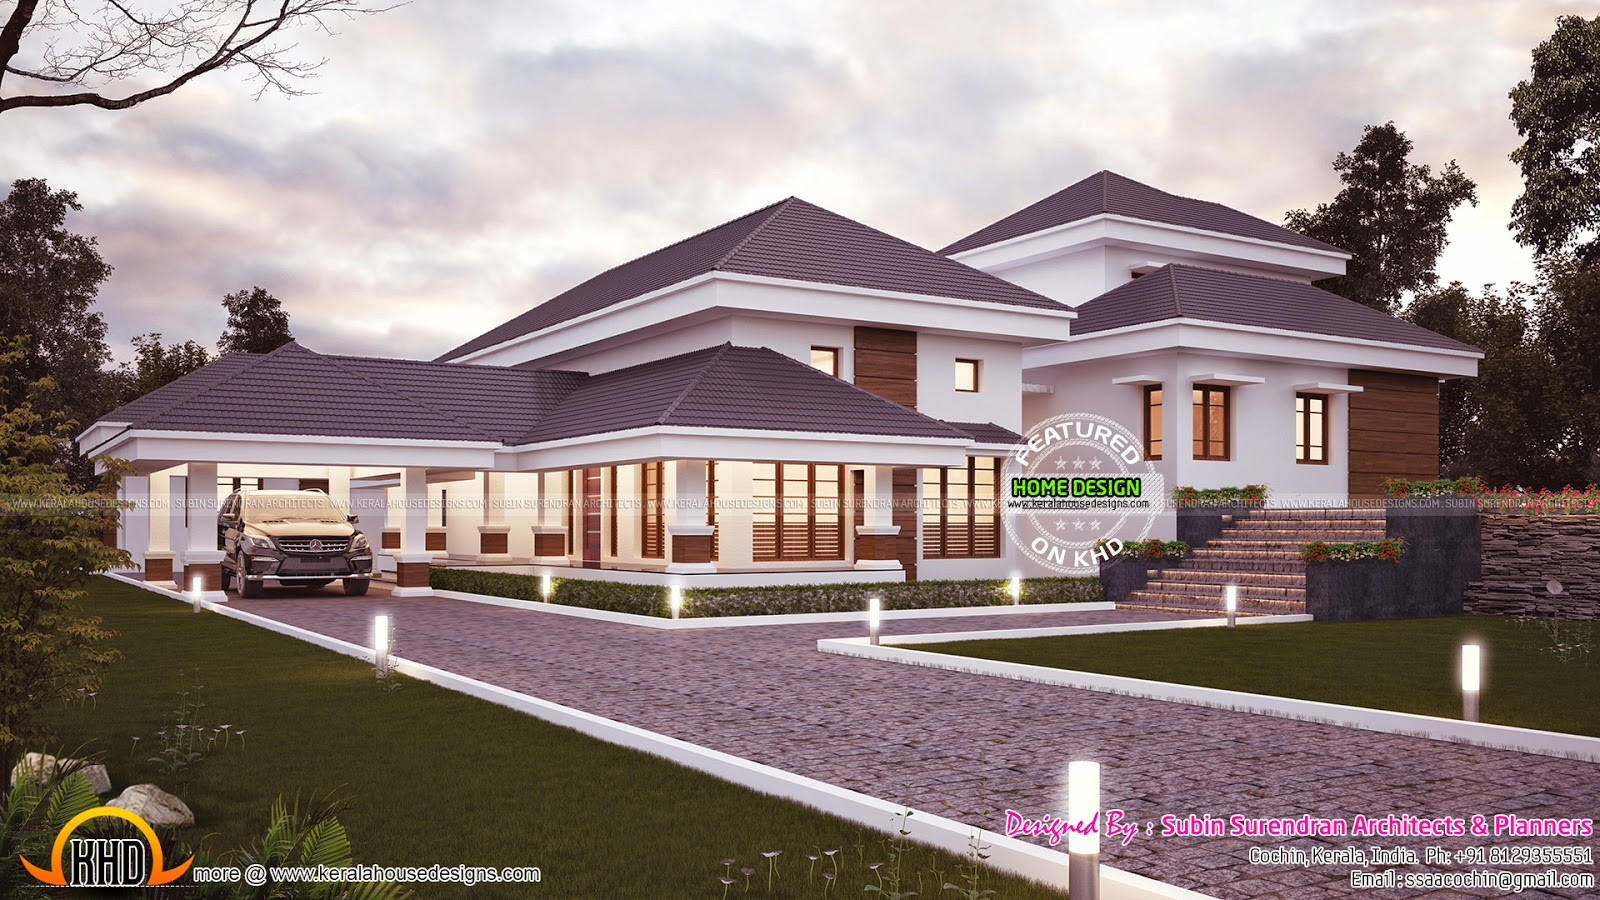 1000 images about magnificent houses which i admire on for Modern kerala style house plans with photos